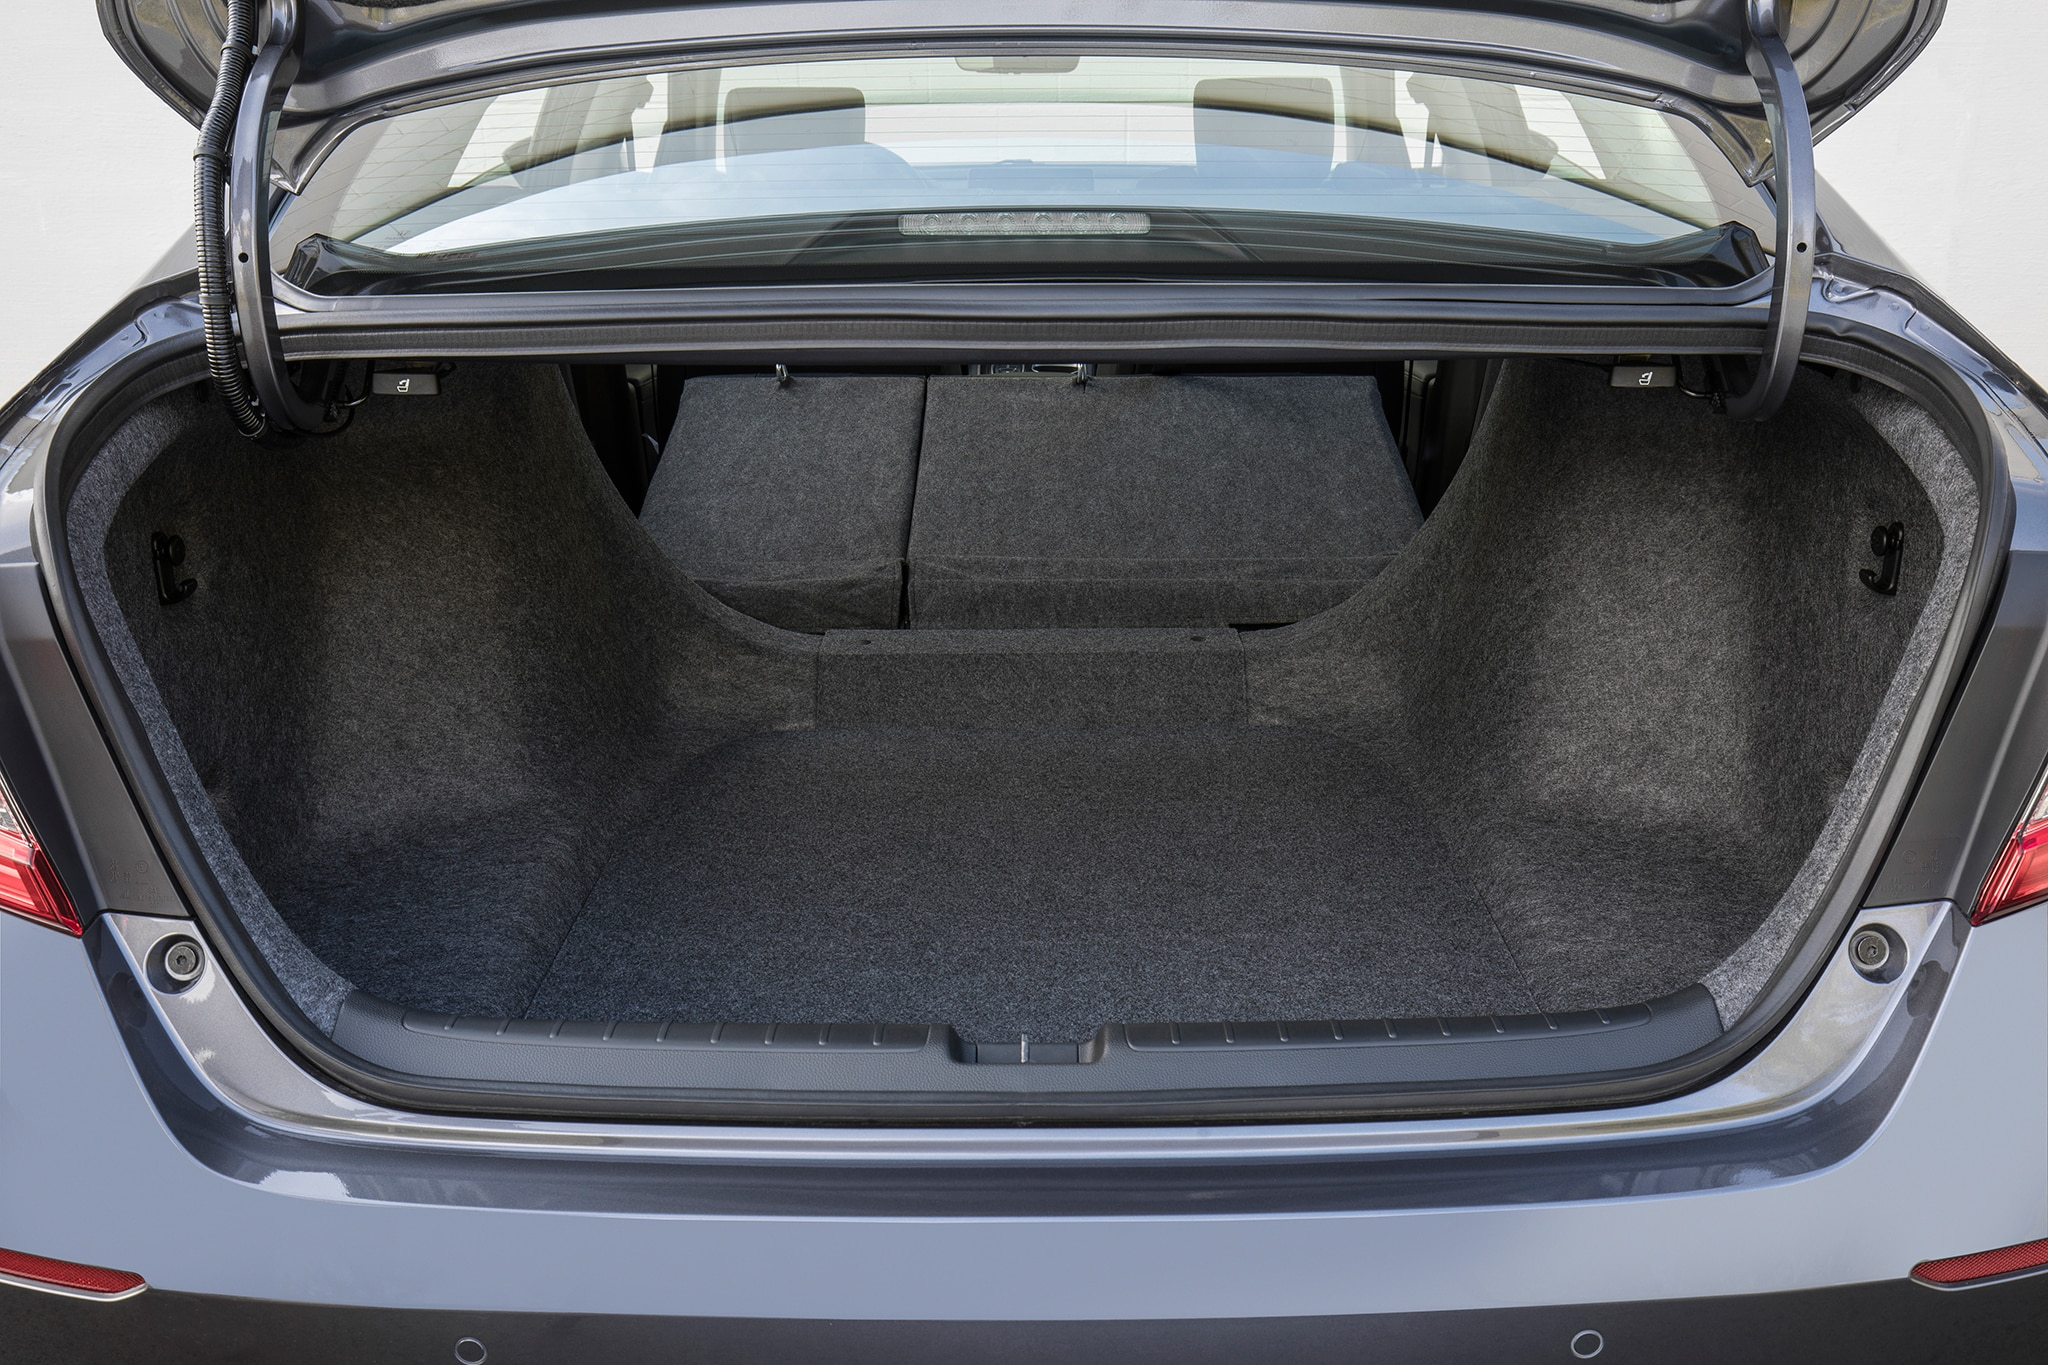 2018 honda accord 2 0t touring quick take review for Honda accord cargo space